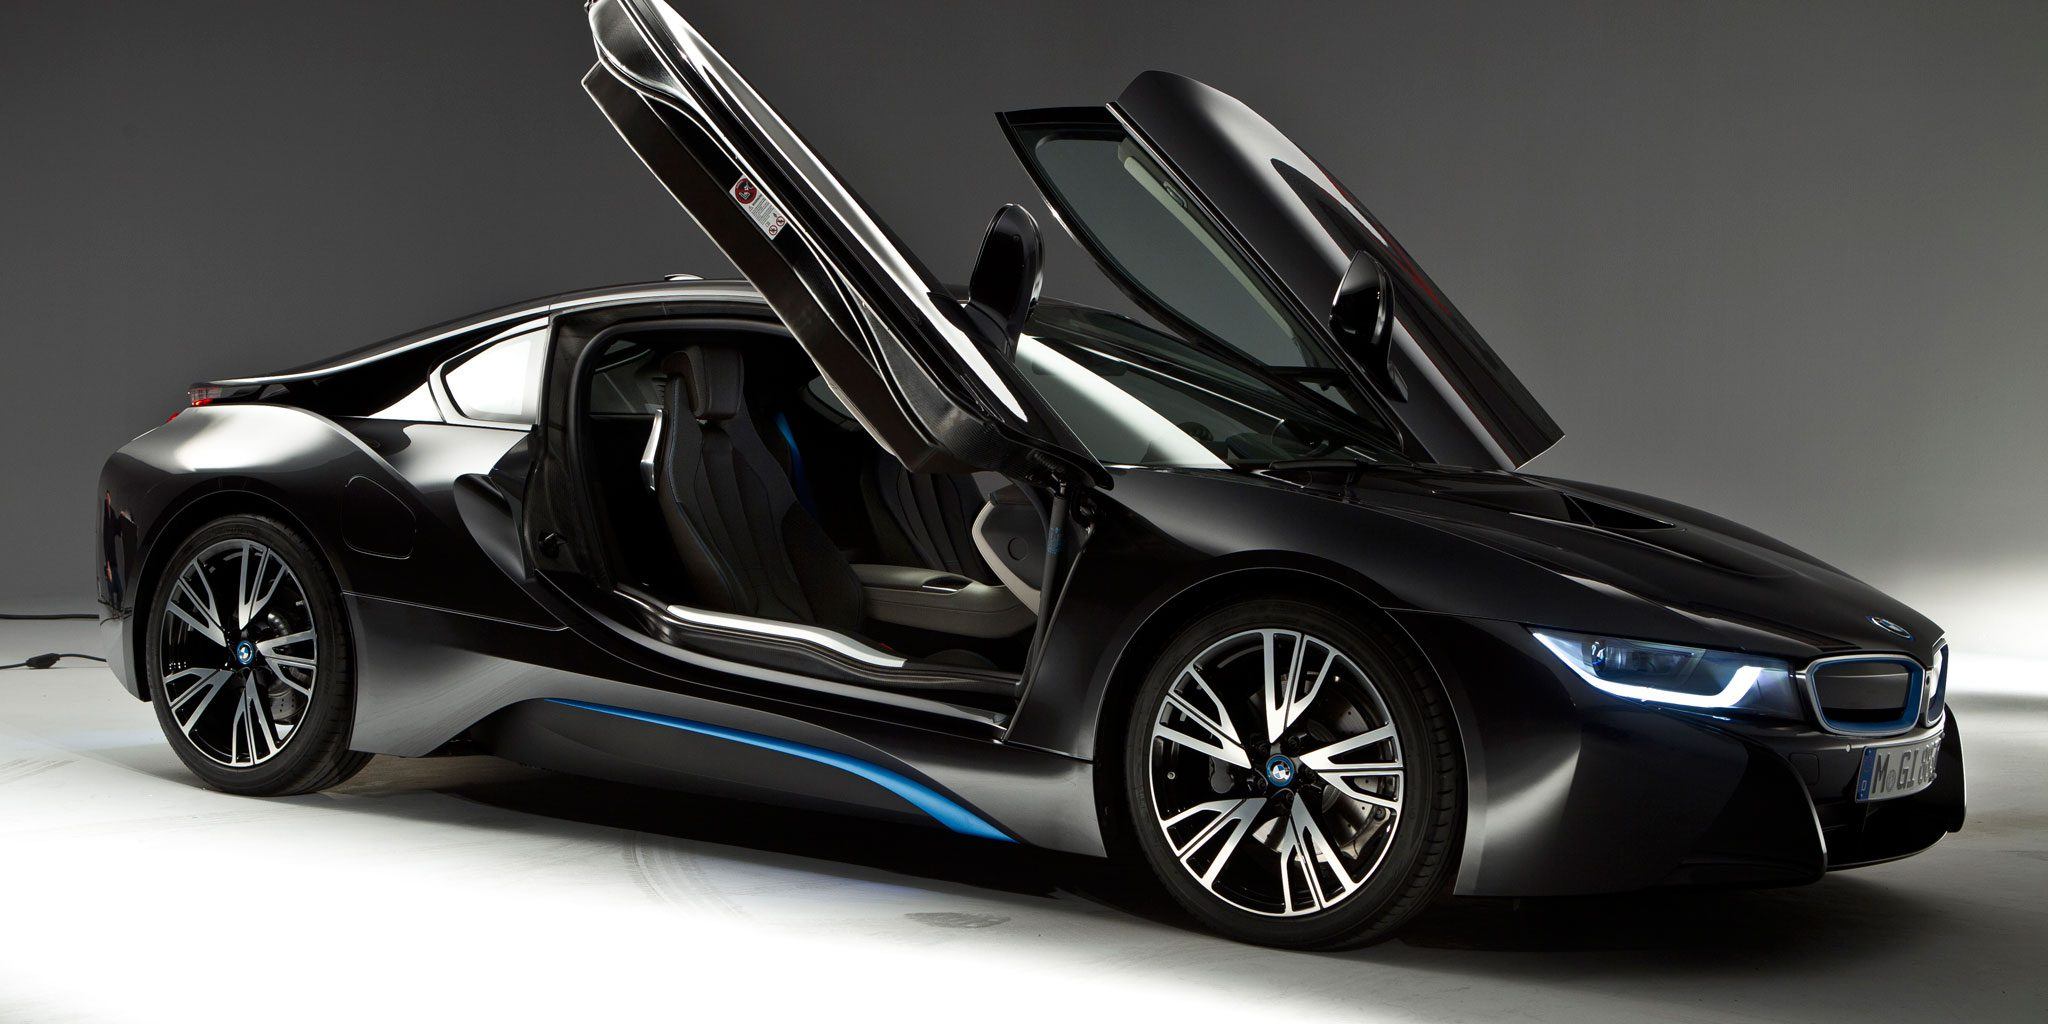 BMW Is Reportedly Working On An All Electric Version Of The I8 With 250 Miles Range